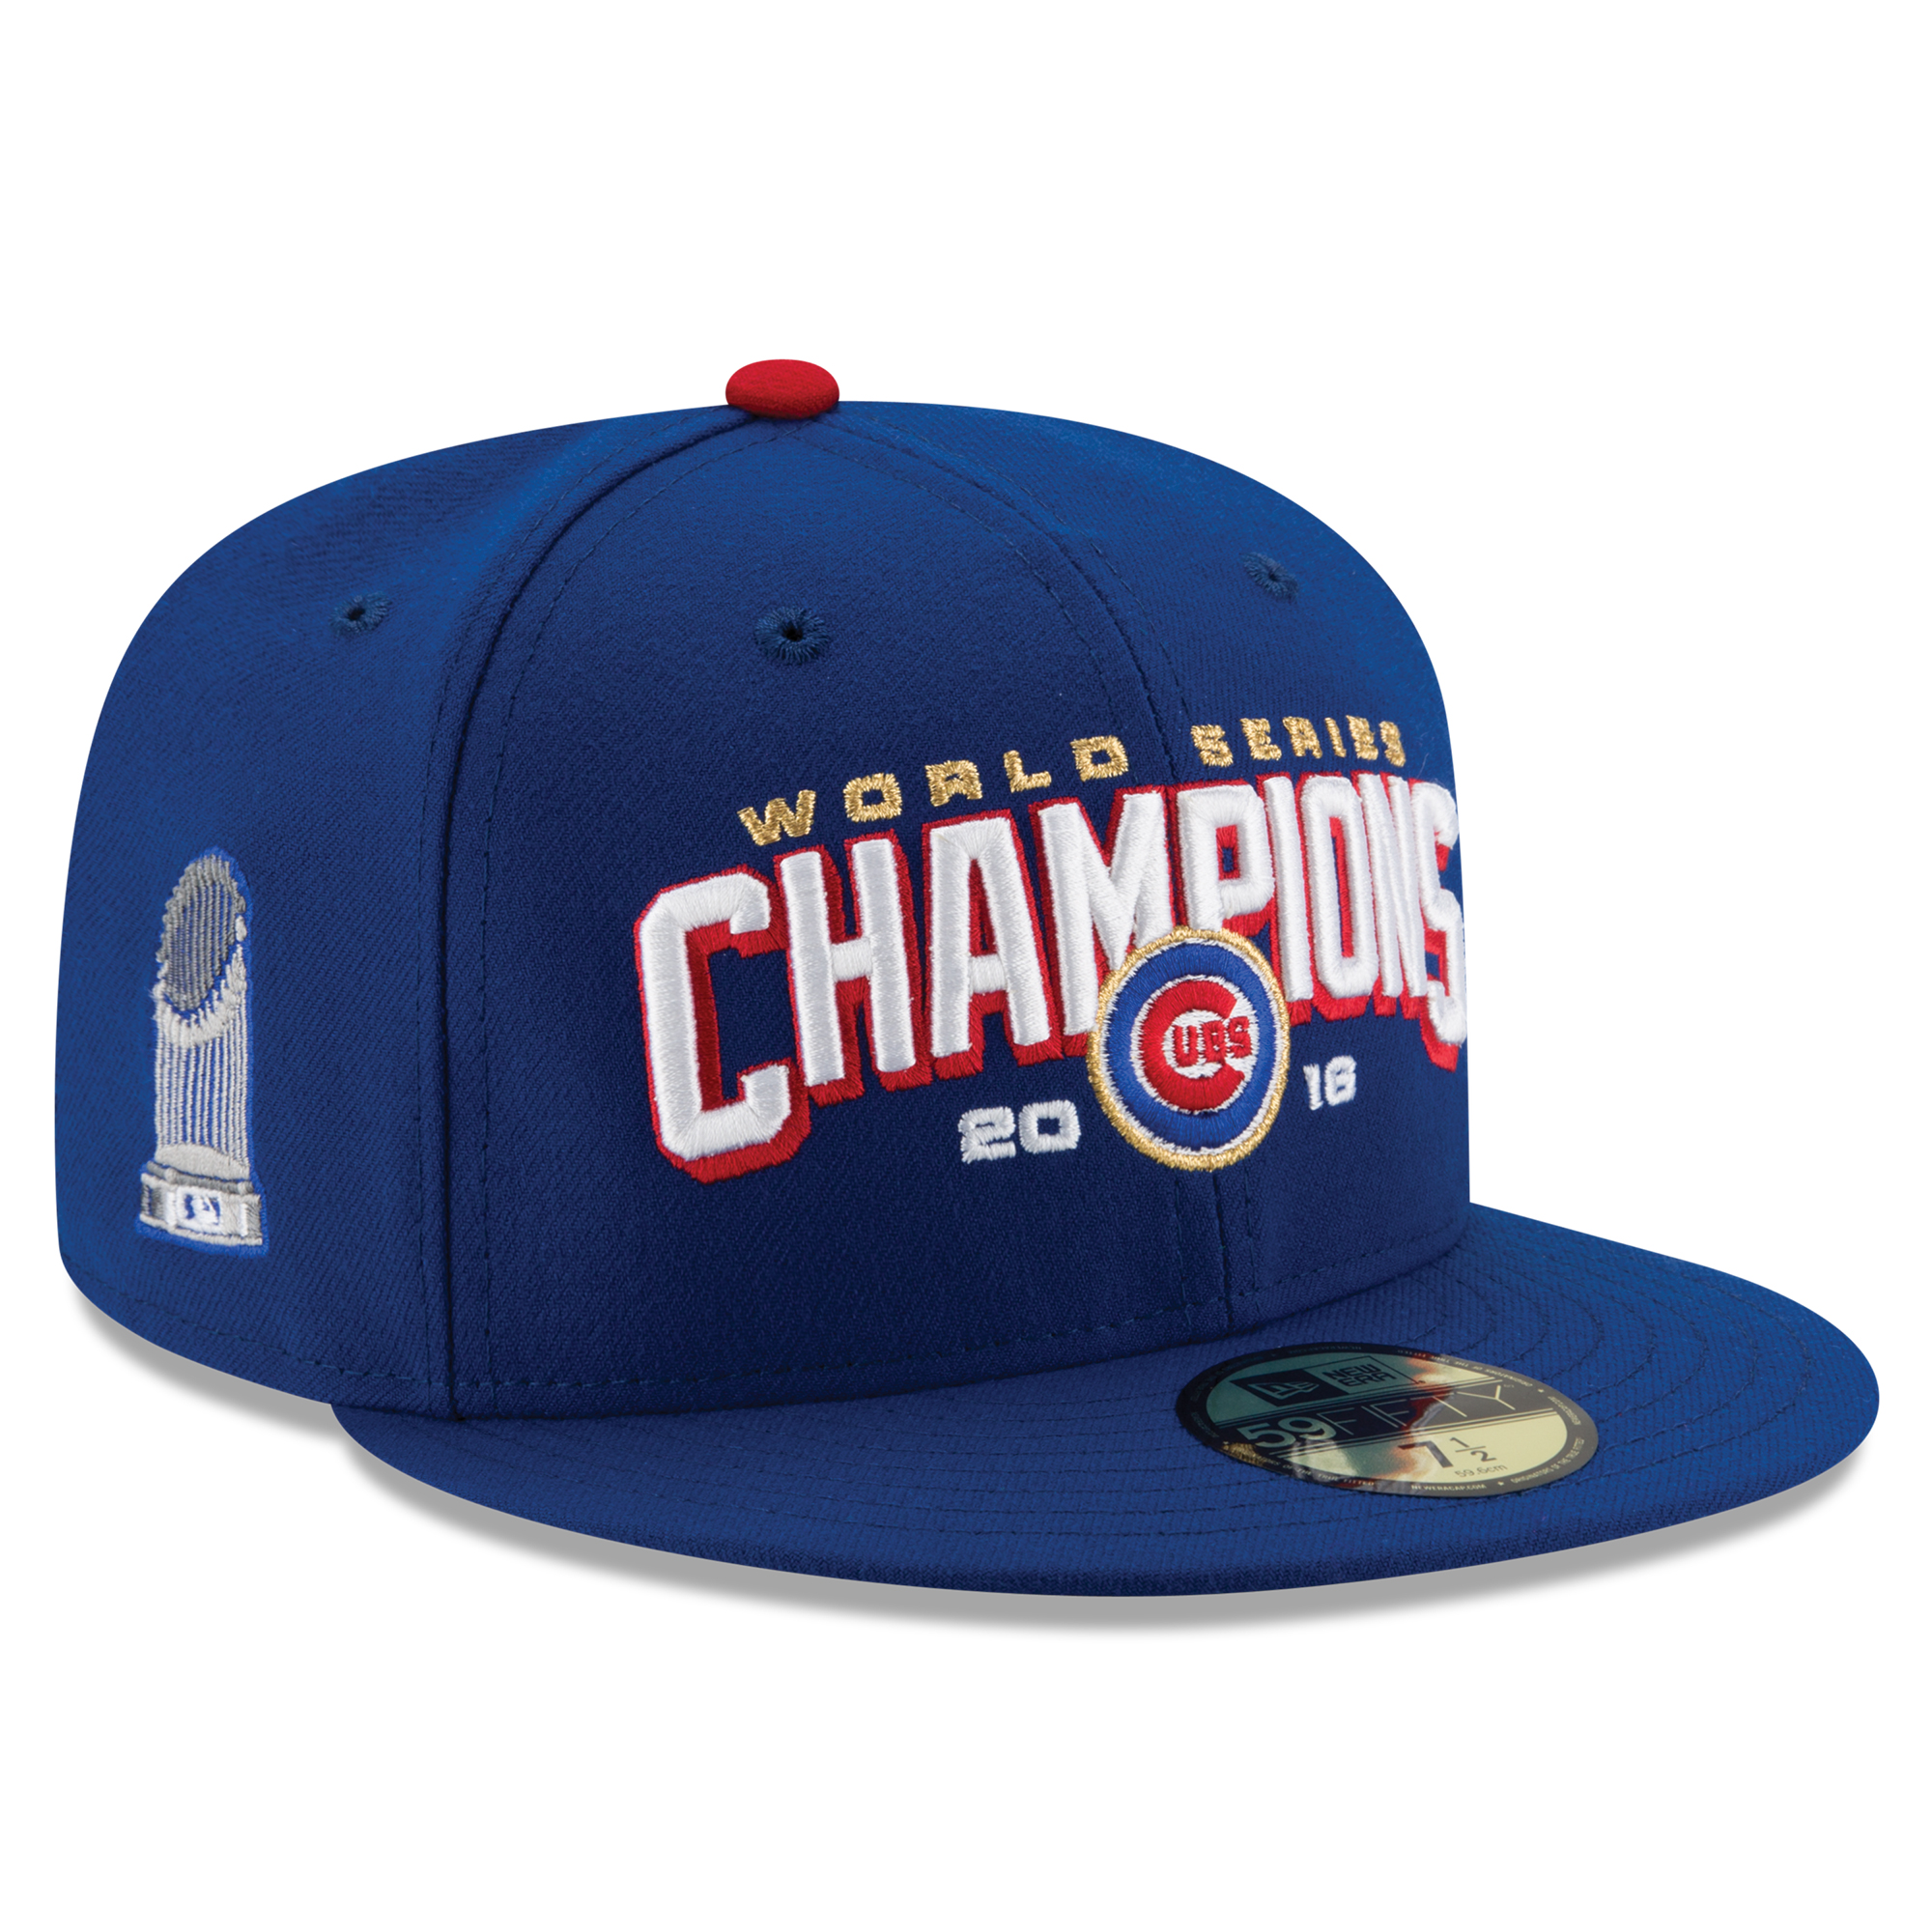 Chicago Cubs New Era 2016 World Series Champions 59FIFTY Fitted Hat - Royal